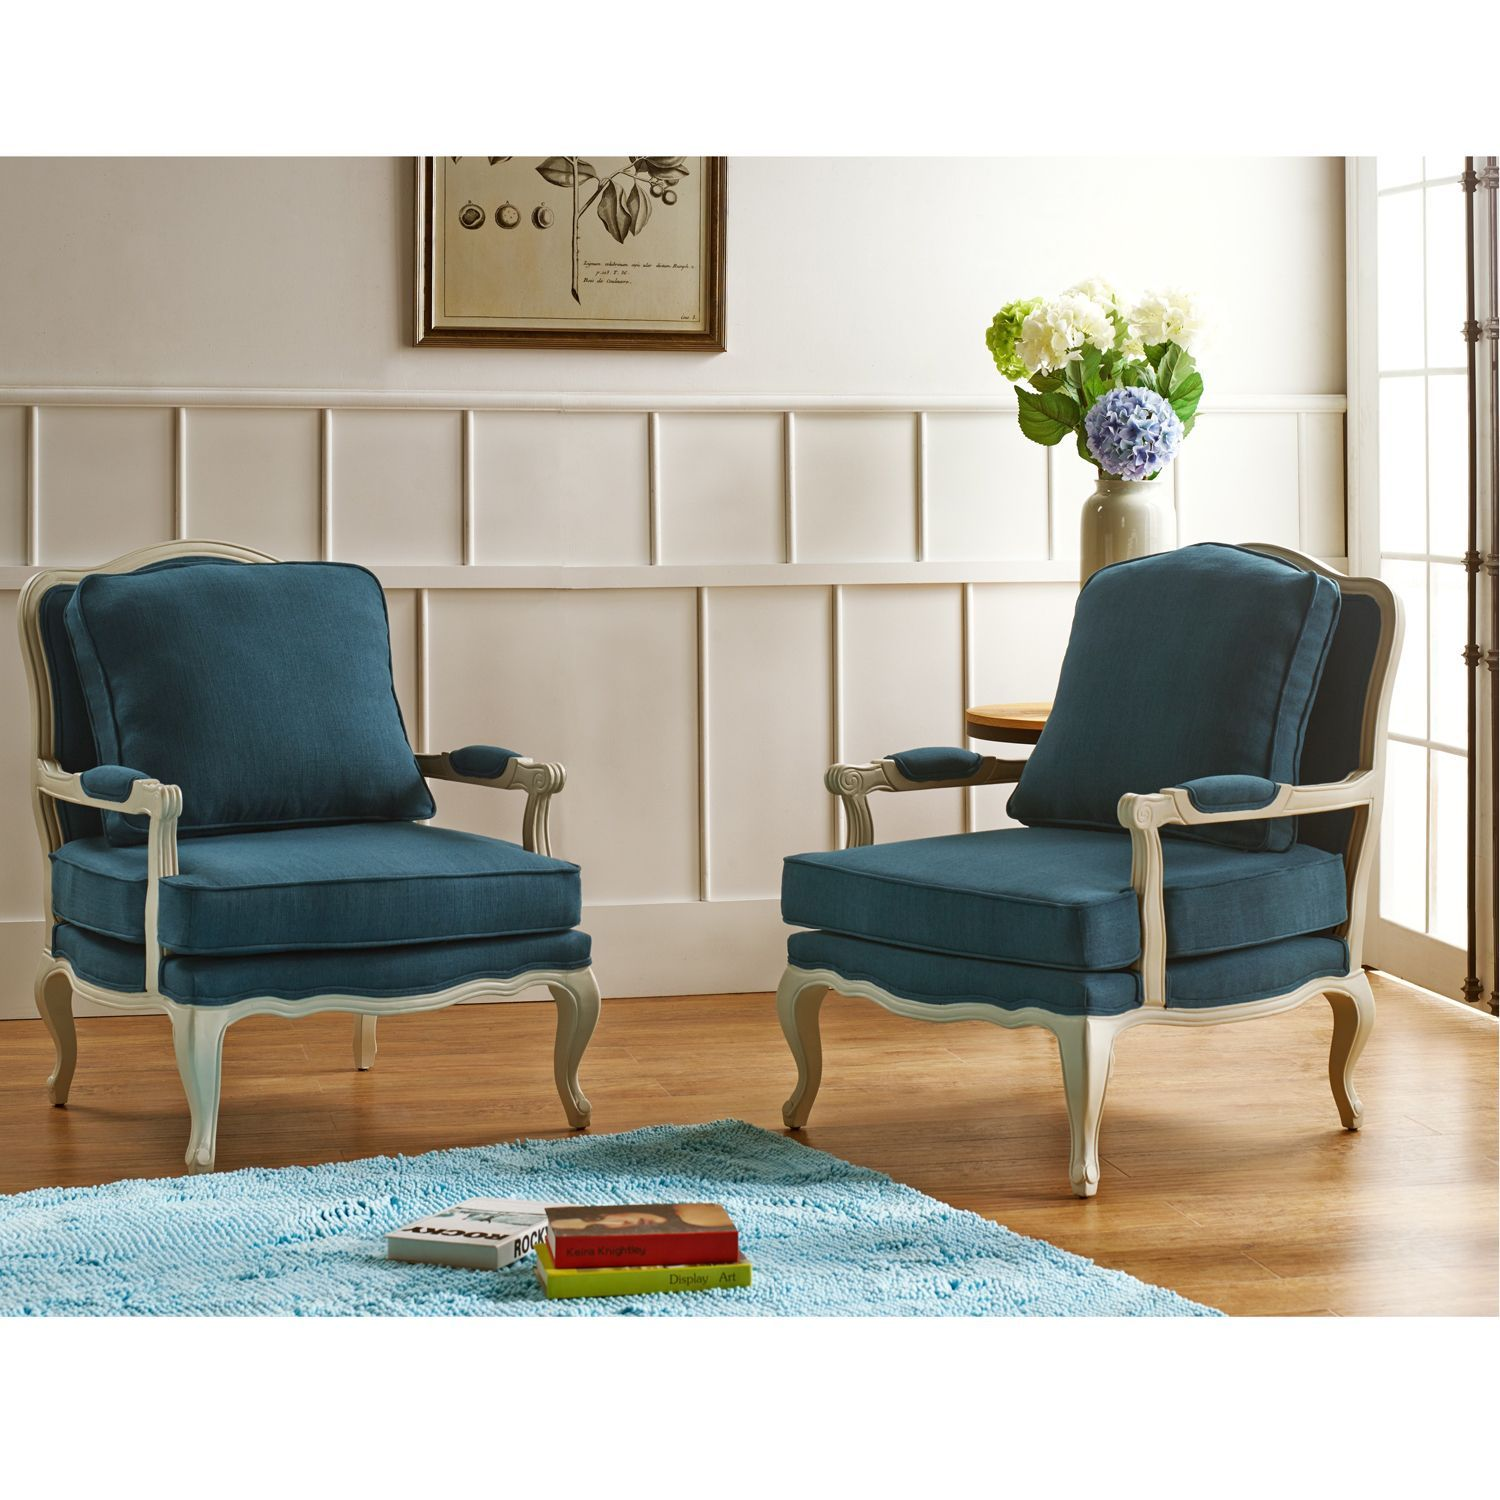 baxton studio antoinette traditional classic antiqued french blue